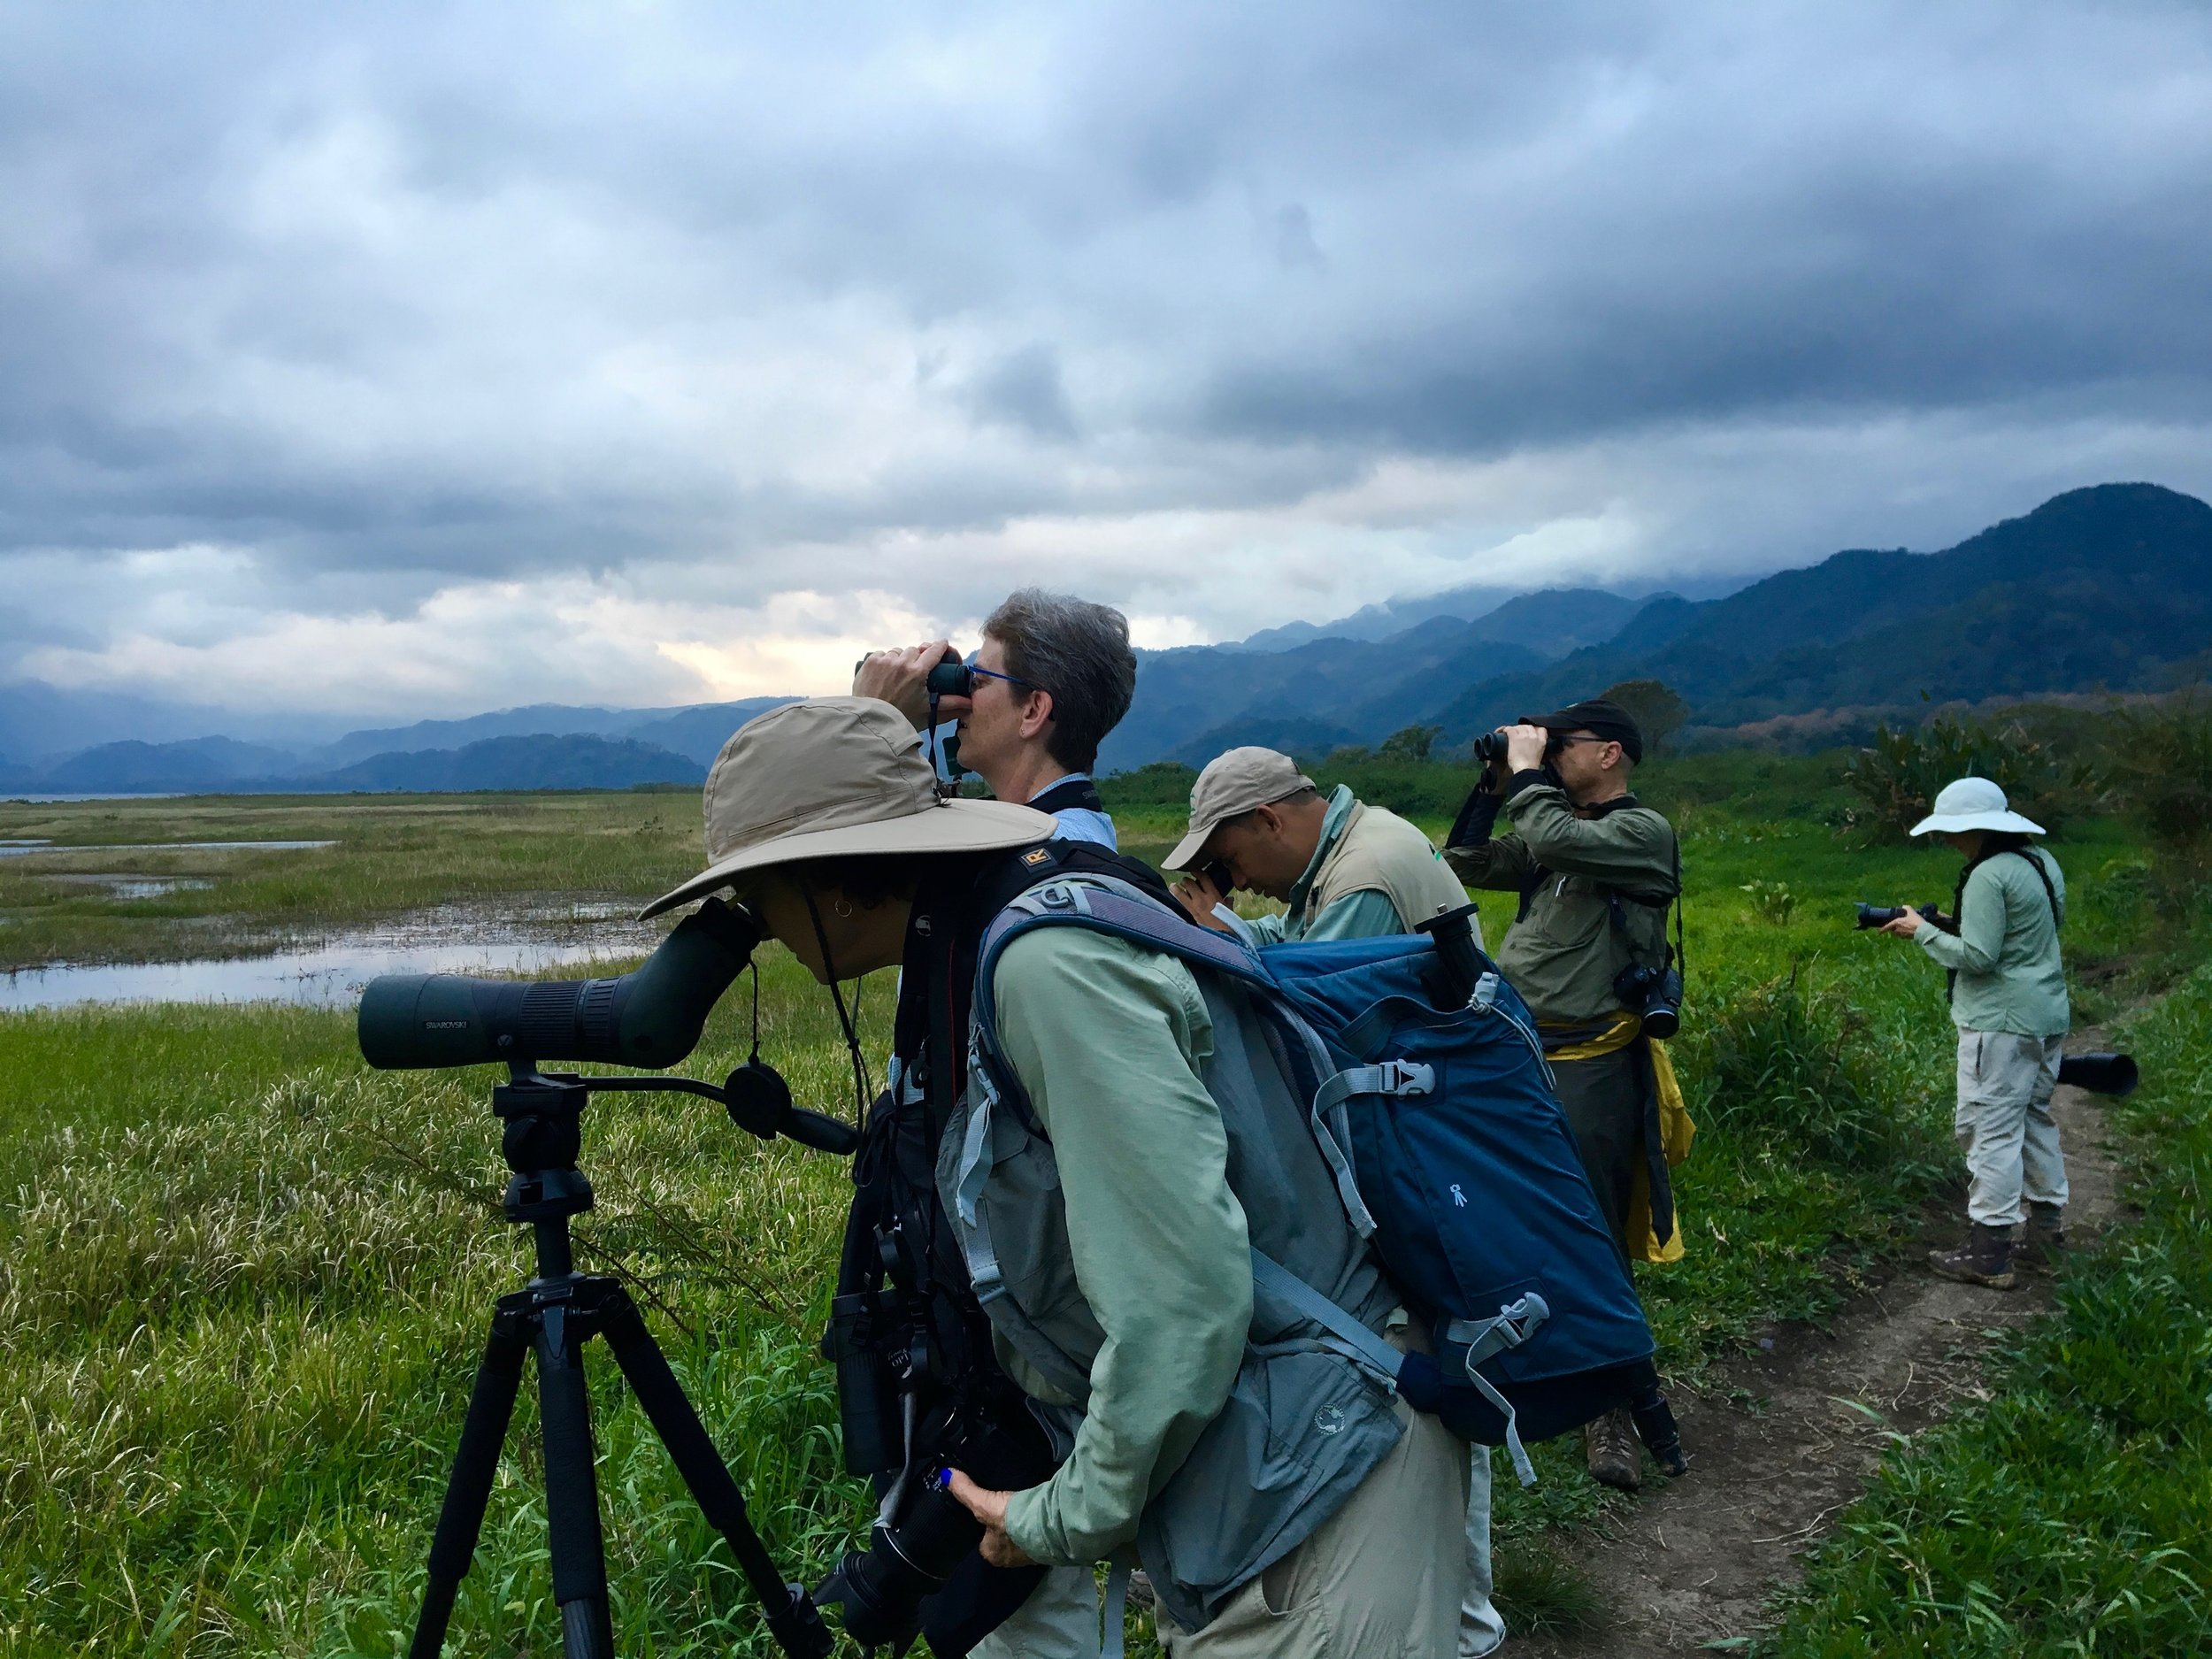 How can you not feel like you're on an adventure while birding in a landscape like that? This was taken at Los Naranjos Eco-Archeological Park.